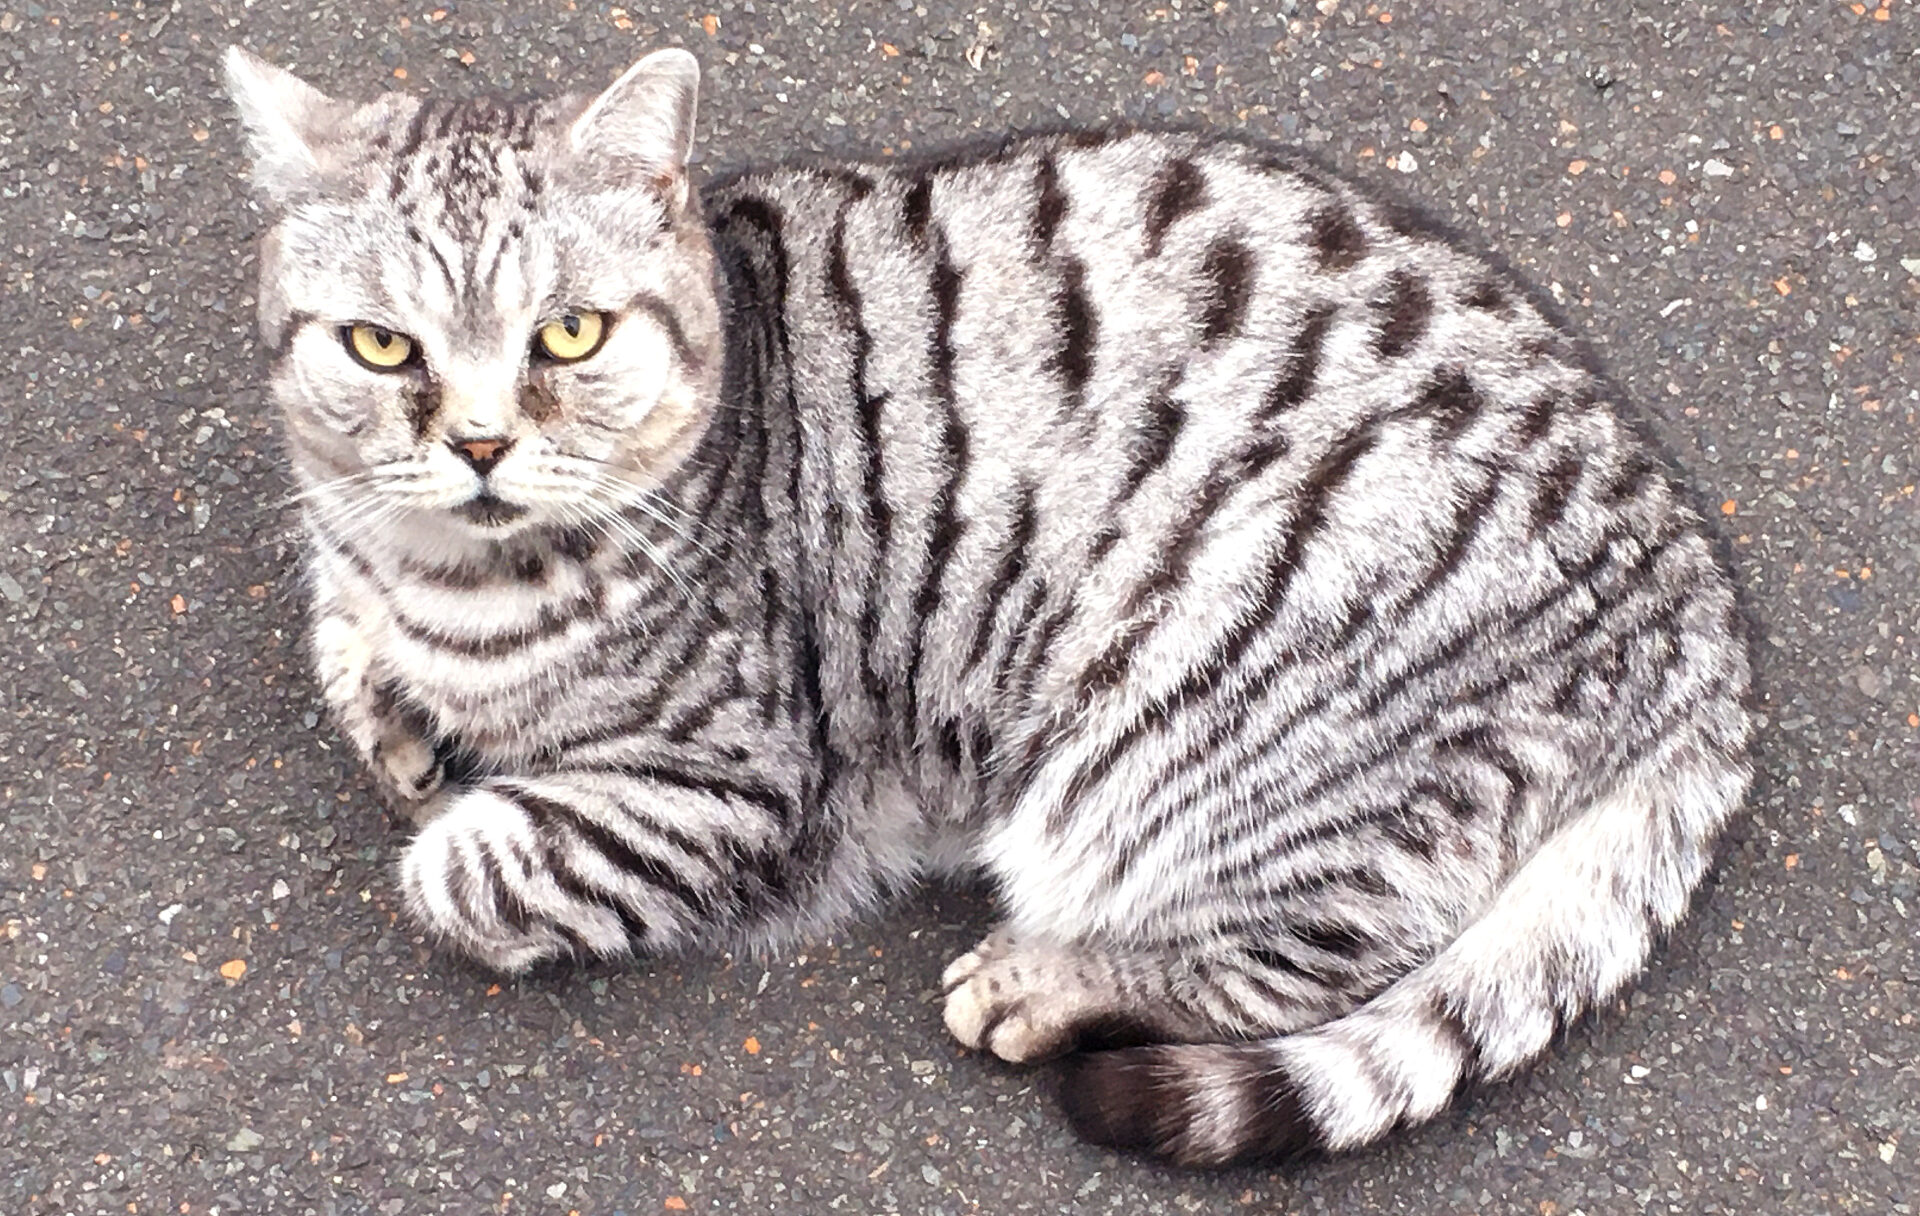 This stripey puss took a dim view of me with my camera.